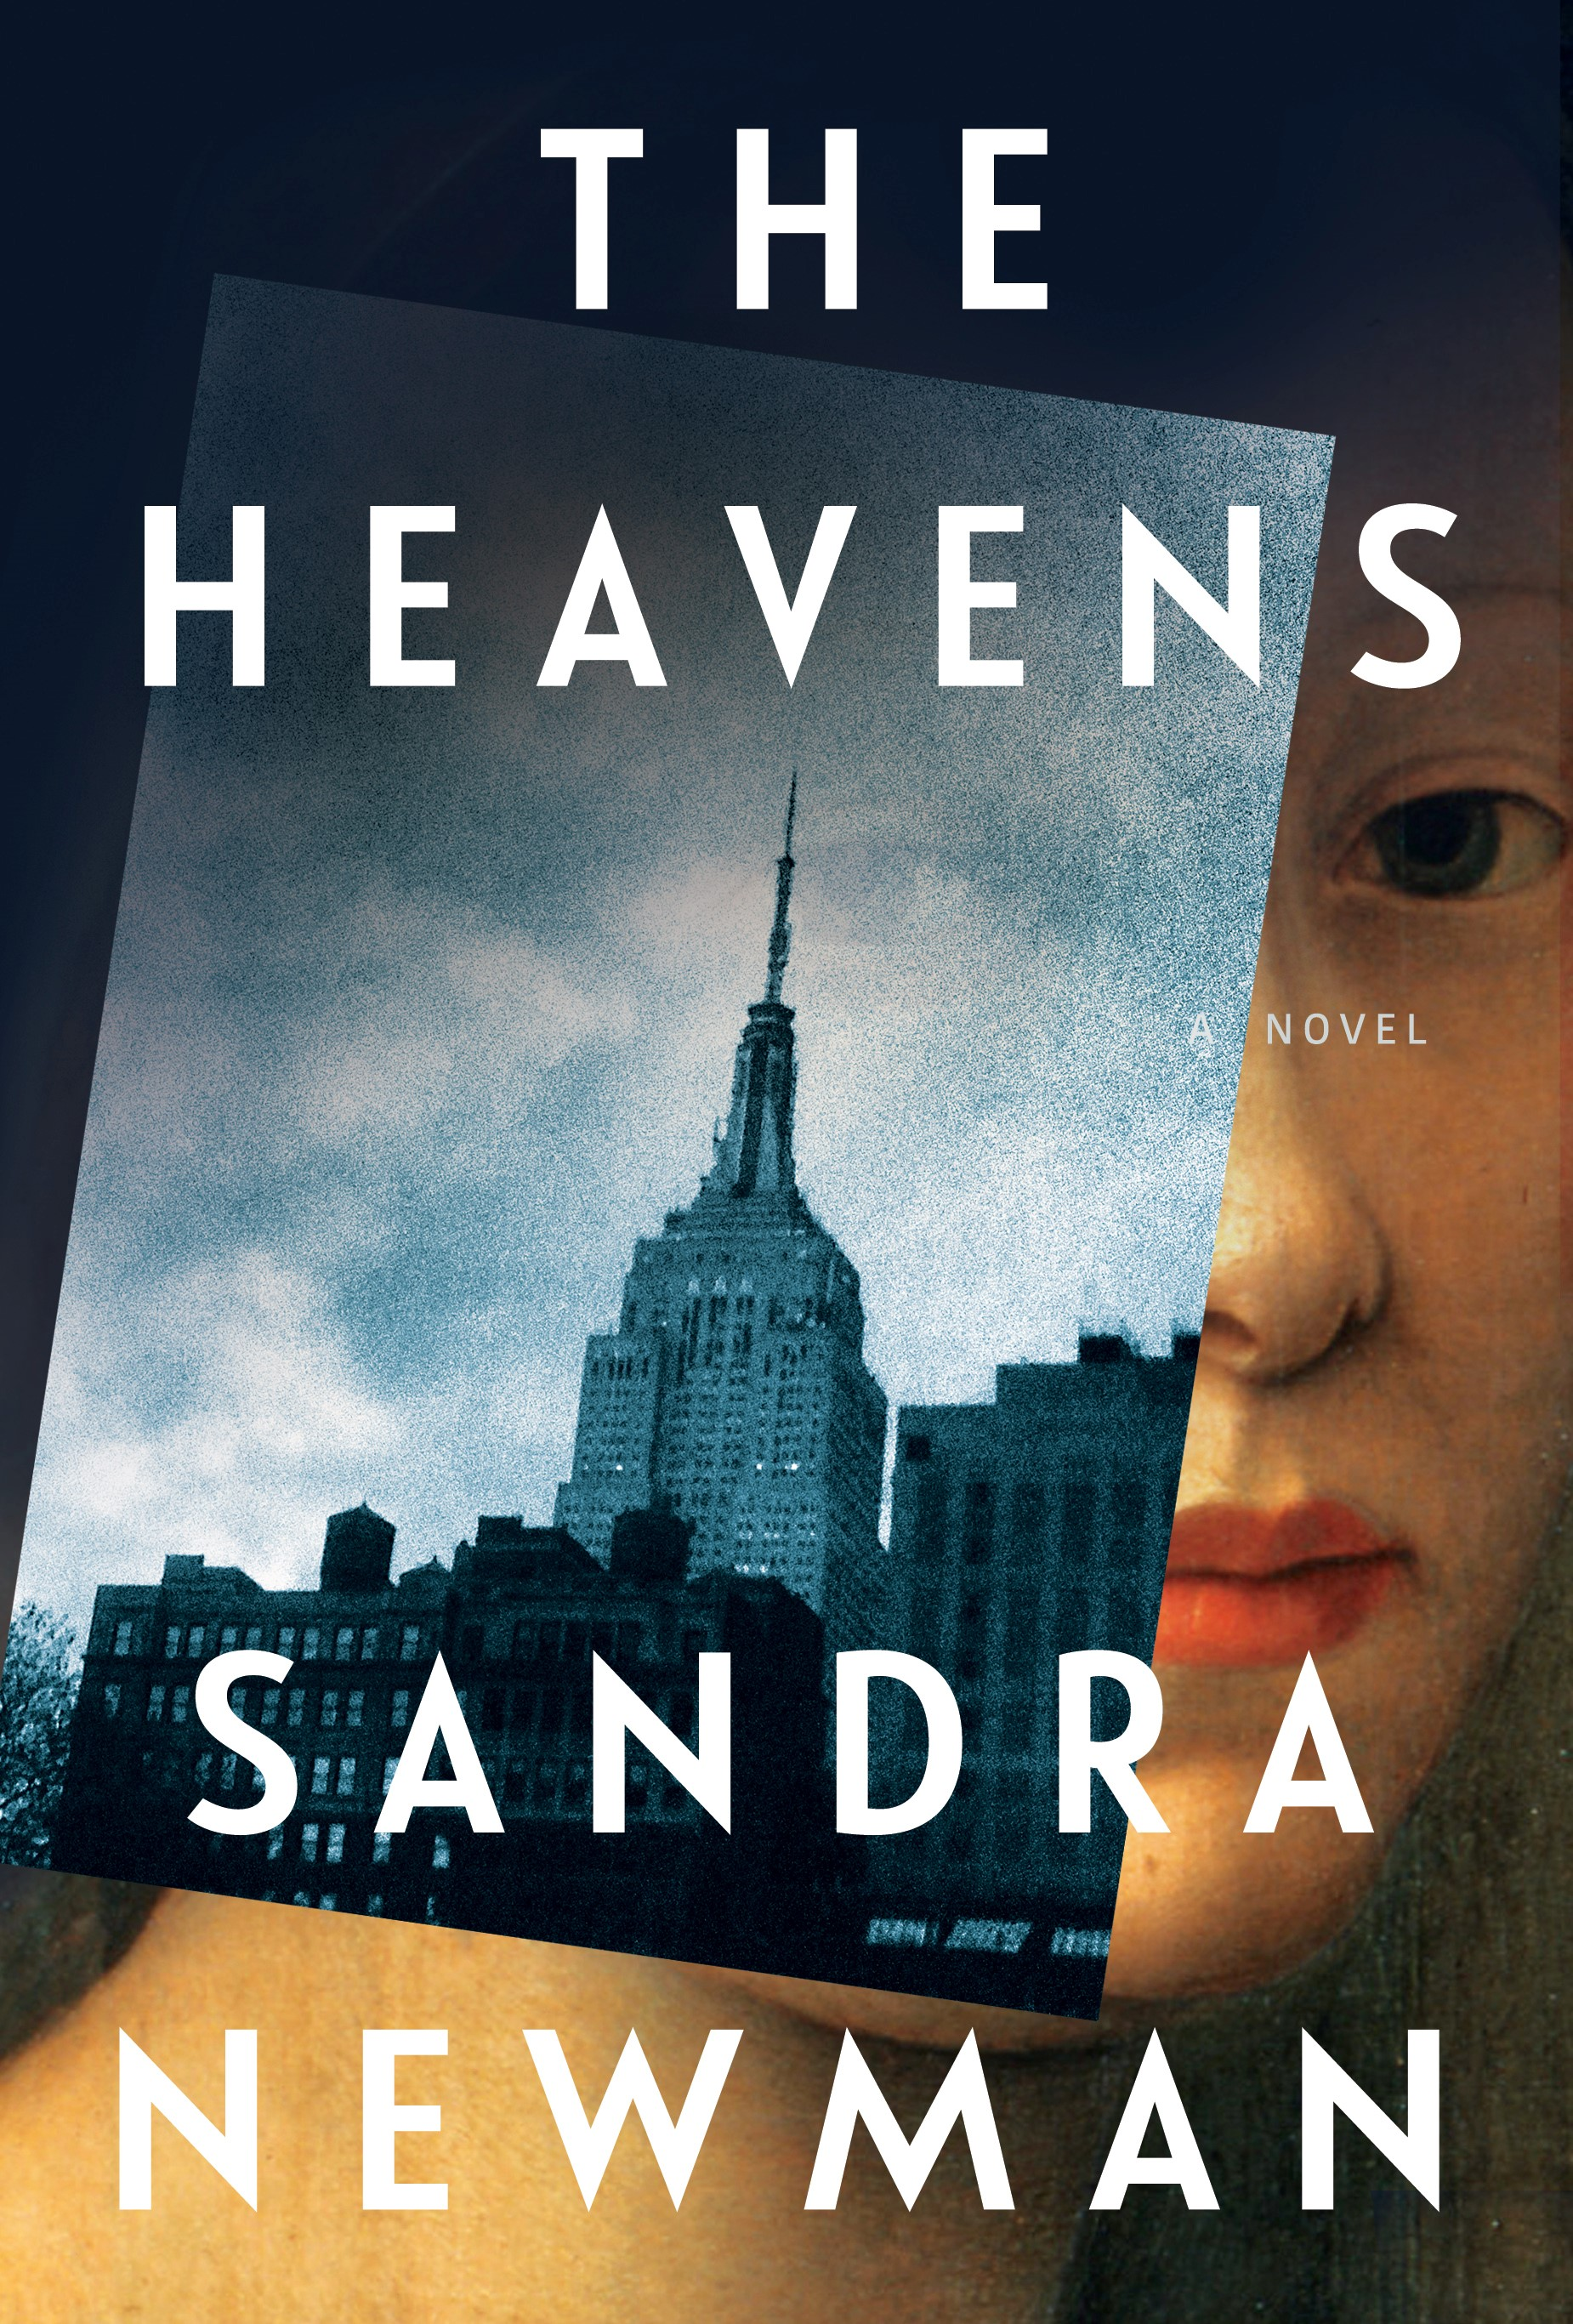 The Heavens by Sandra Newman  from Grove Atlantic